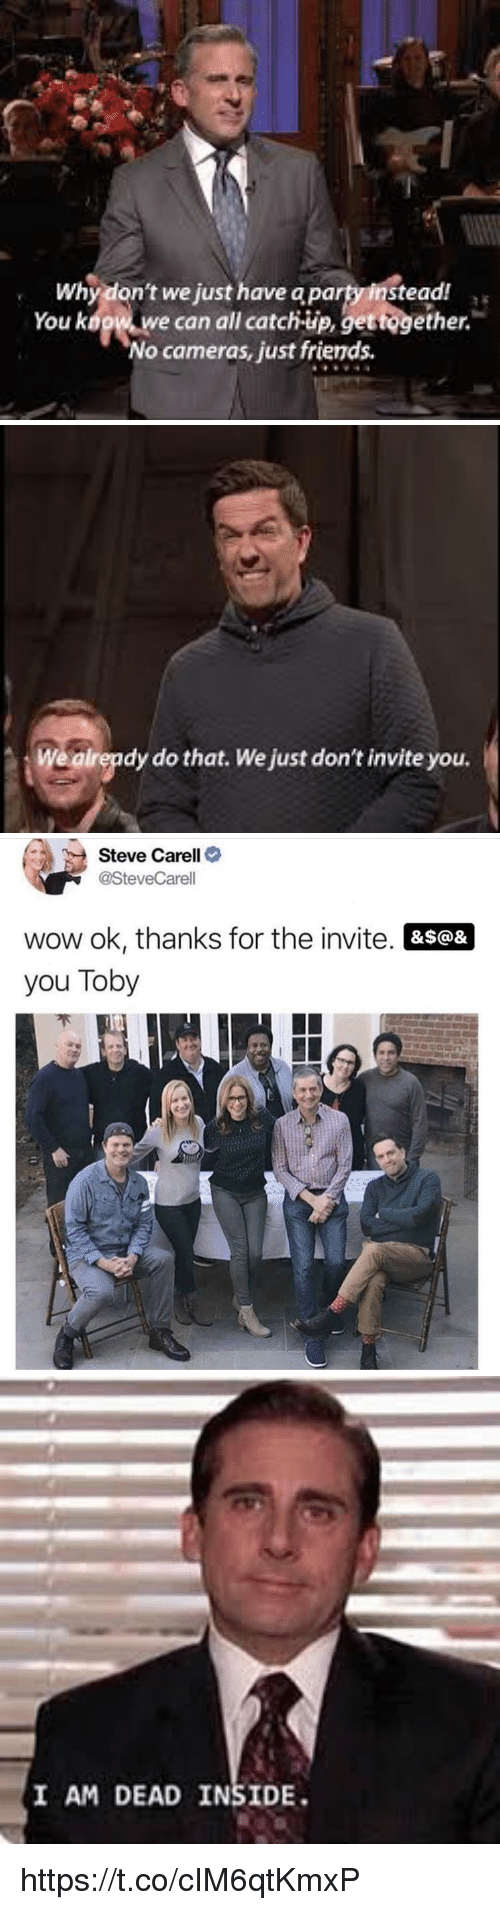 Friends, Memes, and Party: Why don't we just have a party instead  You kogw w  e can all catch-up, gettogether.  No cameras, just friends   Wealrepdy do that. We just don't invite you.   Steve Carell>  @SteveCarell  wow ok, thanks for the invite. &s@&  you Toby   I AM DEAD INSIDE https://t.co/cIM6qtKmxP